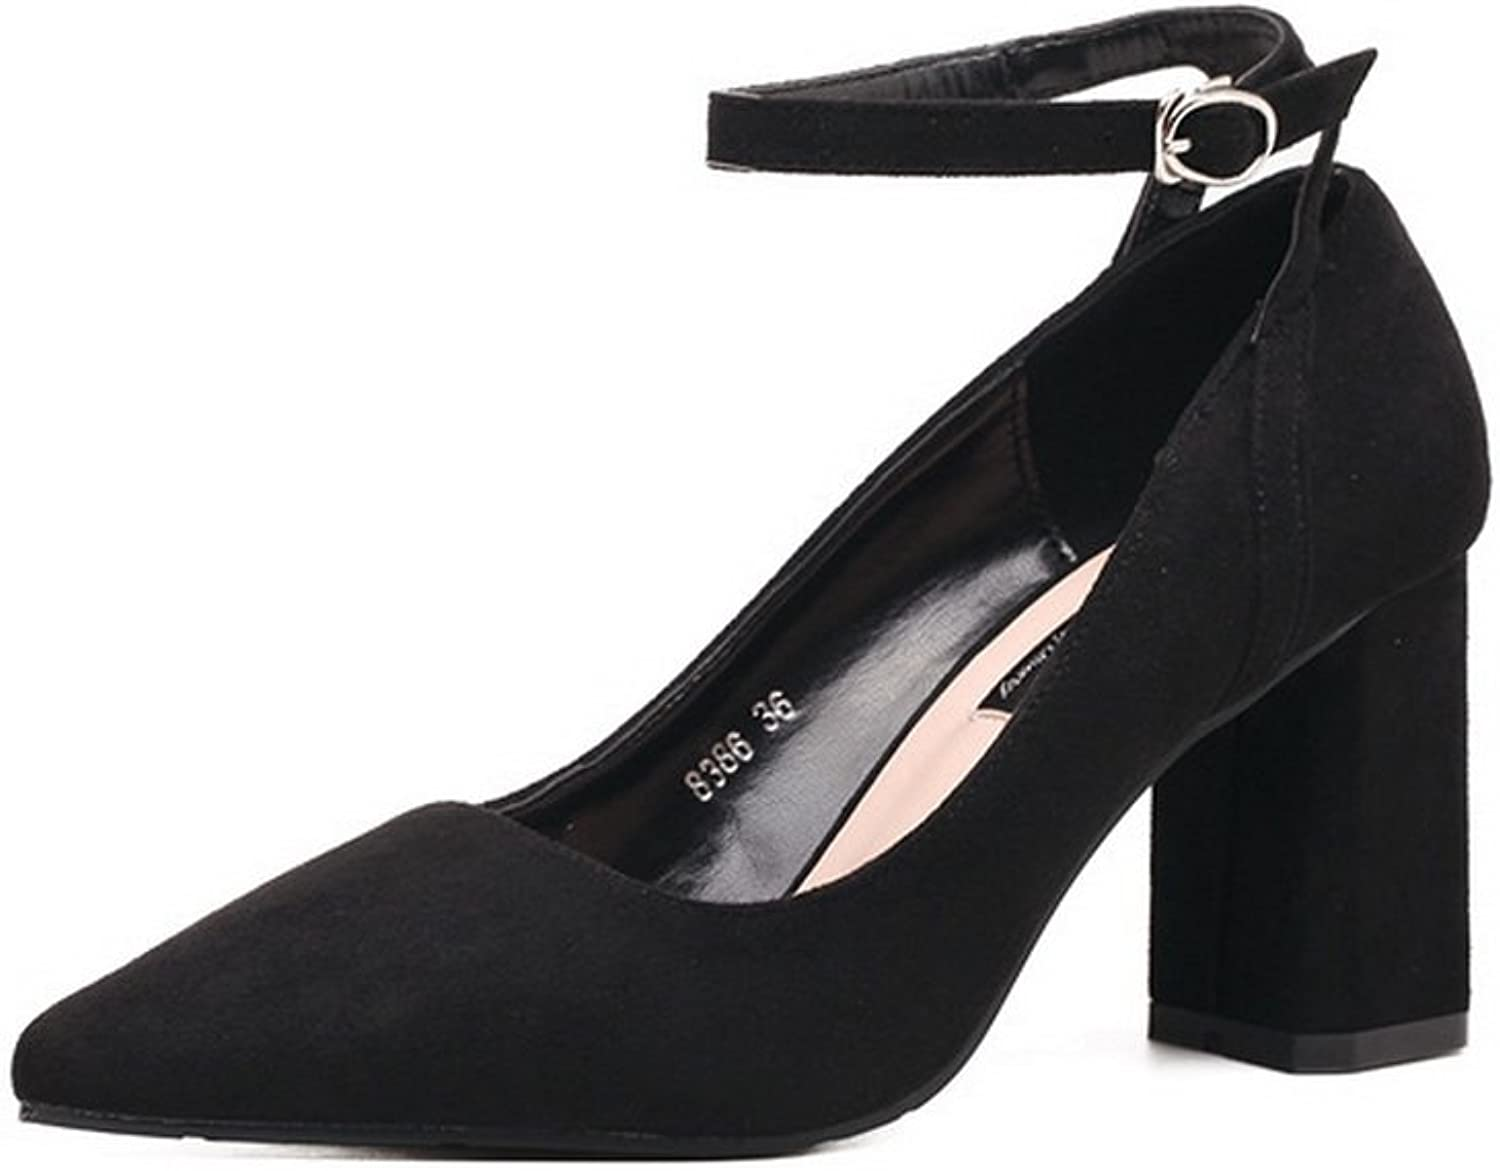 1TO9 Womens Chunky Heels Buckle Pointed-Toe Black Suede Pumps shoes - 6.5 B(M) US